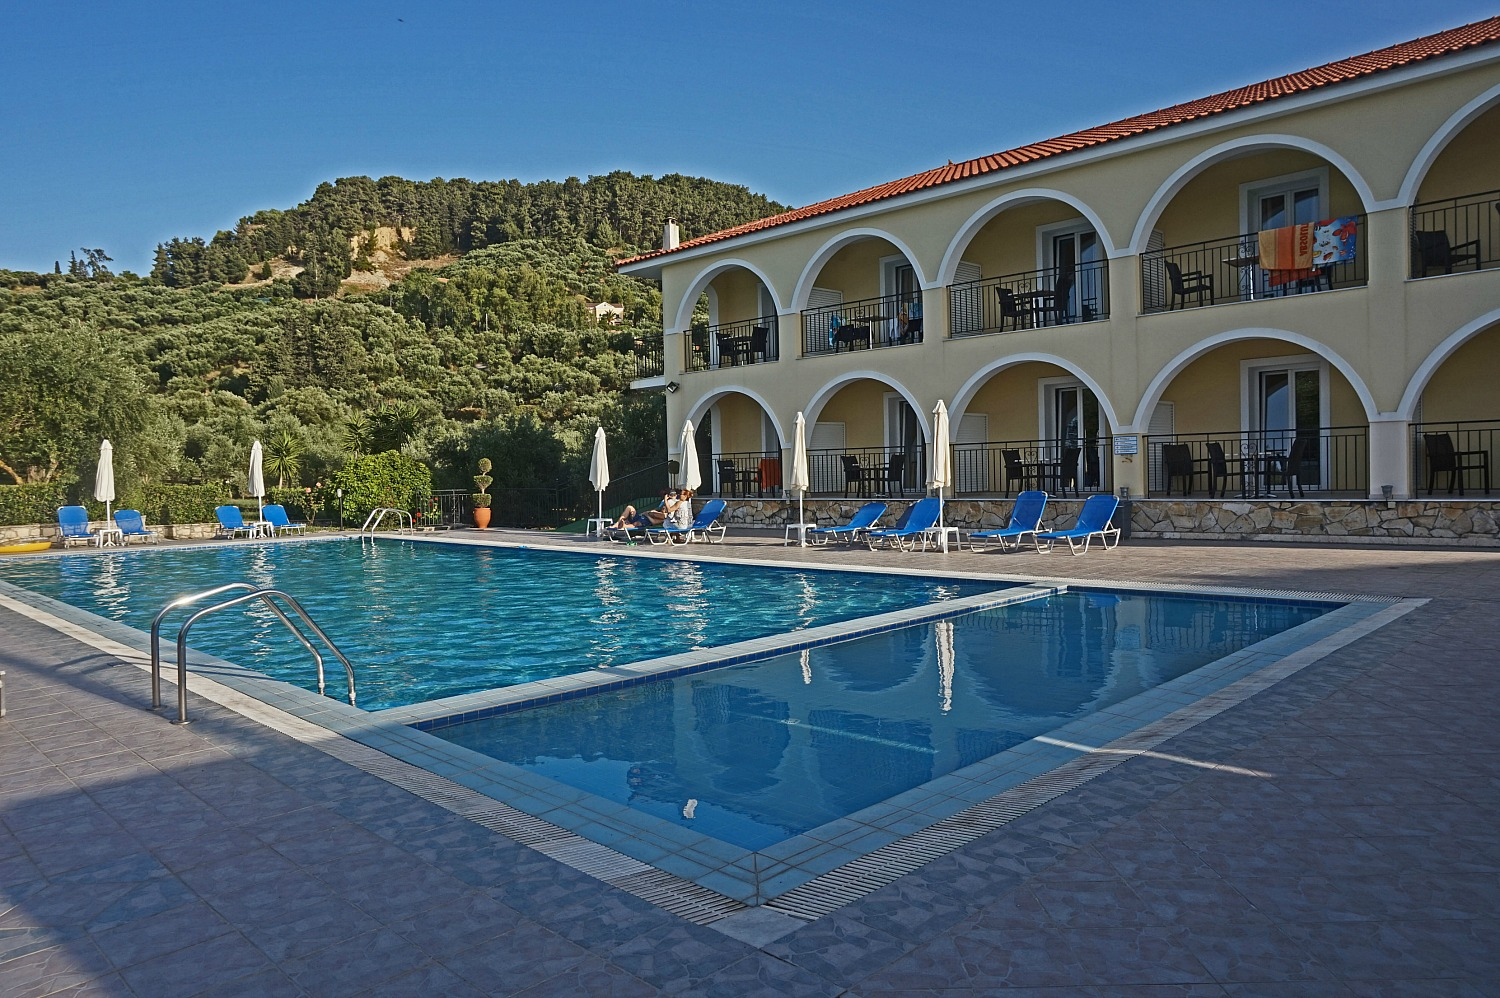 Zakynthos Greece - how to visit. Varres Hotel.